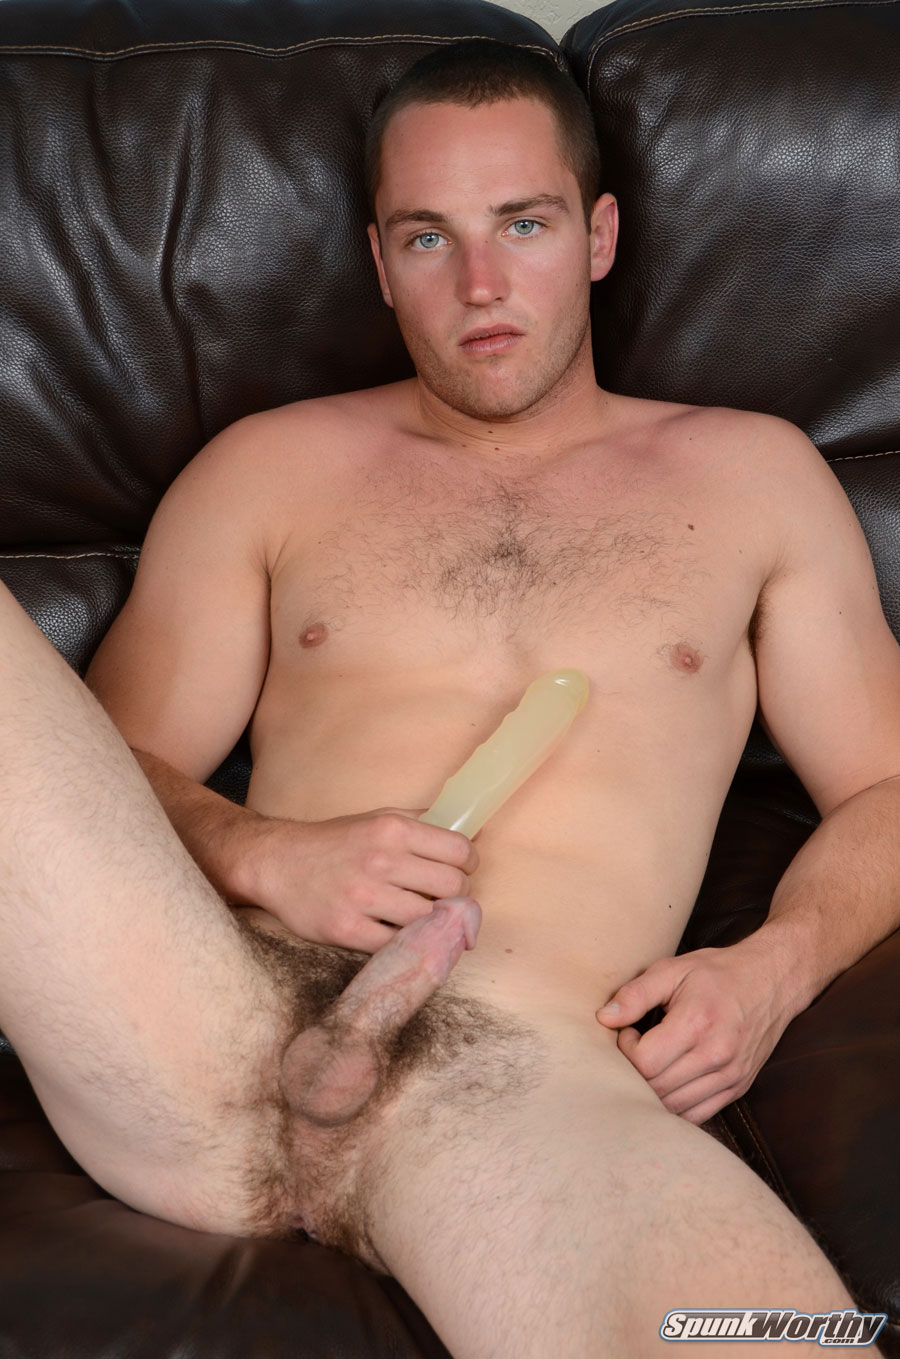 SpunkWorthy Dean Straight Marine Uses A Dildo On Hairy Ass Amateur Gay Porn 03 Ripped Marine Fucks His Straight Hairy Ass With A Dildo